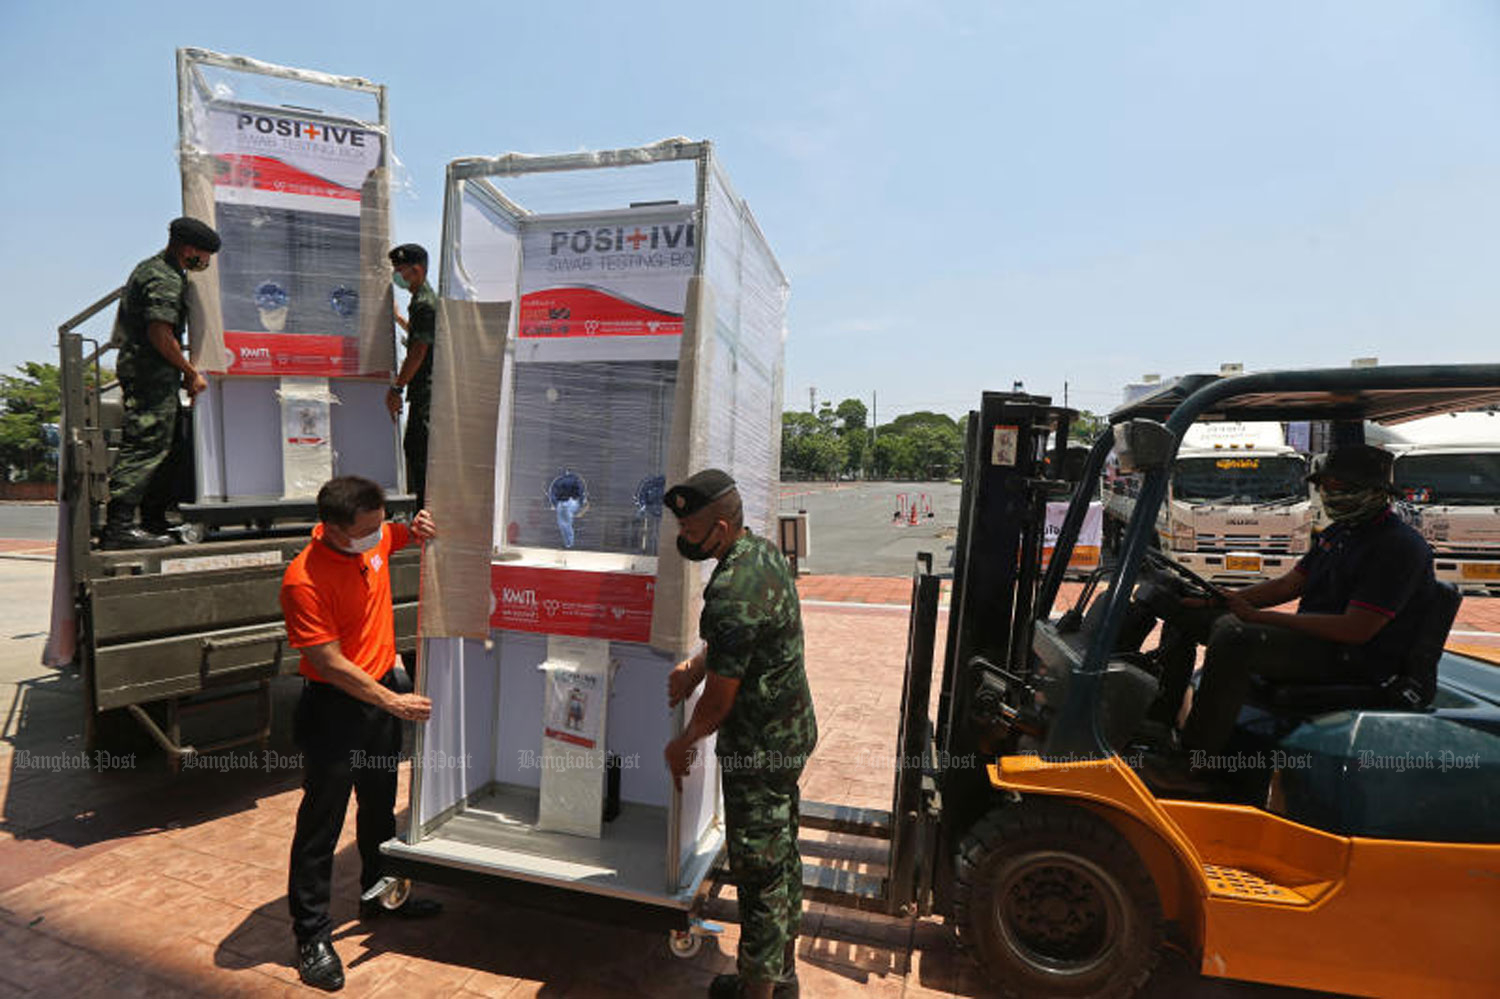 Soldiers help to load equipment, including pressure chambers to treat Covid-19 patients, onto a truck. Donated by King Mongkut's Institute of Technology Ladkrabang, the equipment will be delivered to various hospitals. (Photo by Varuth Hirunyatheb)